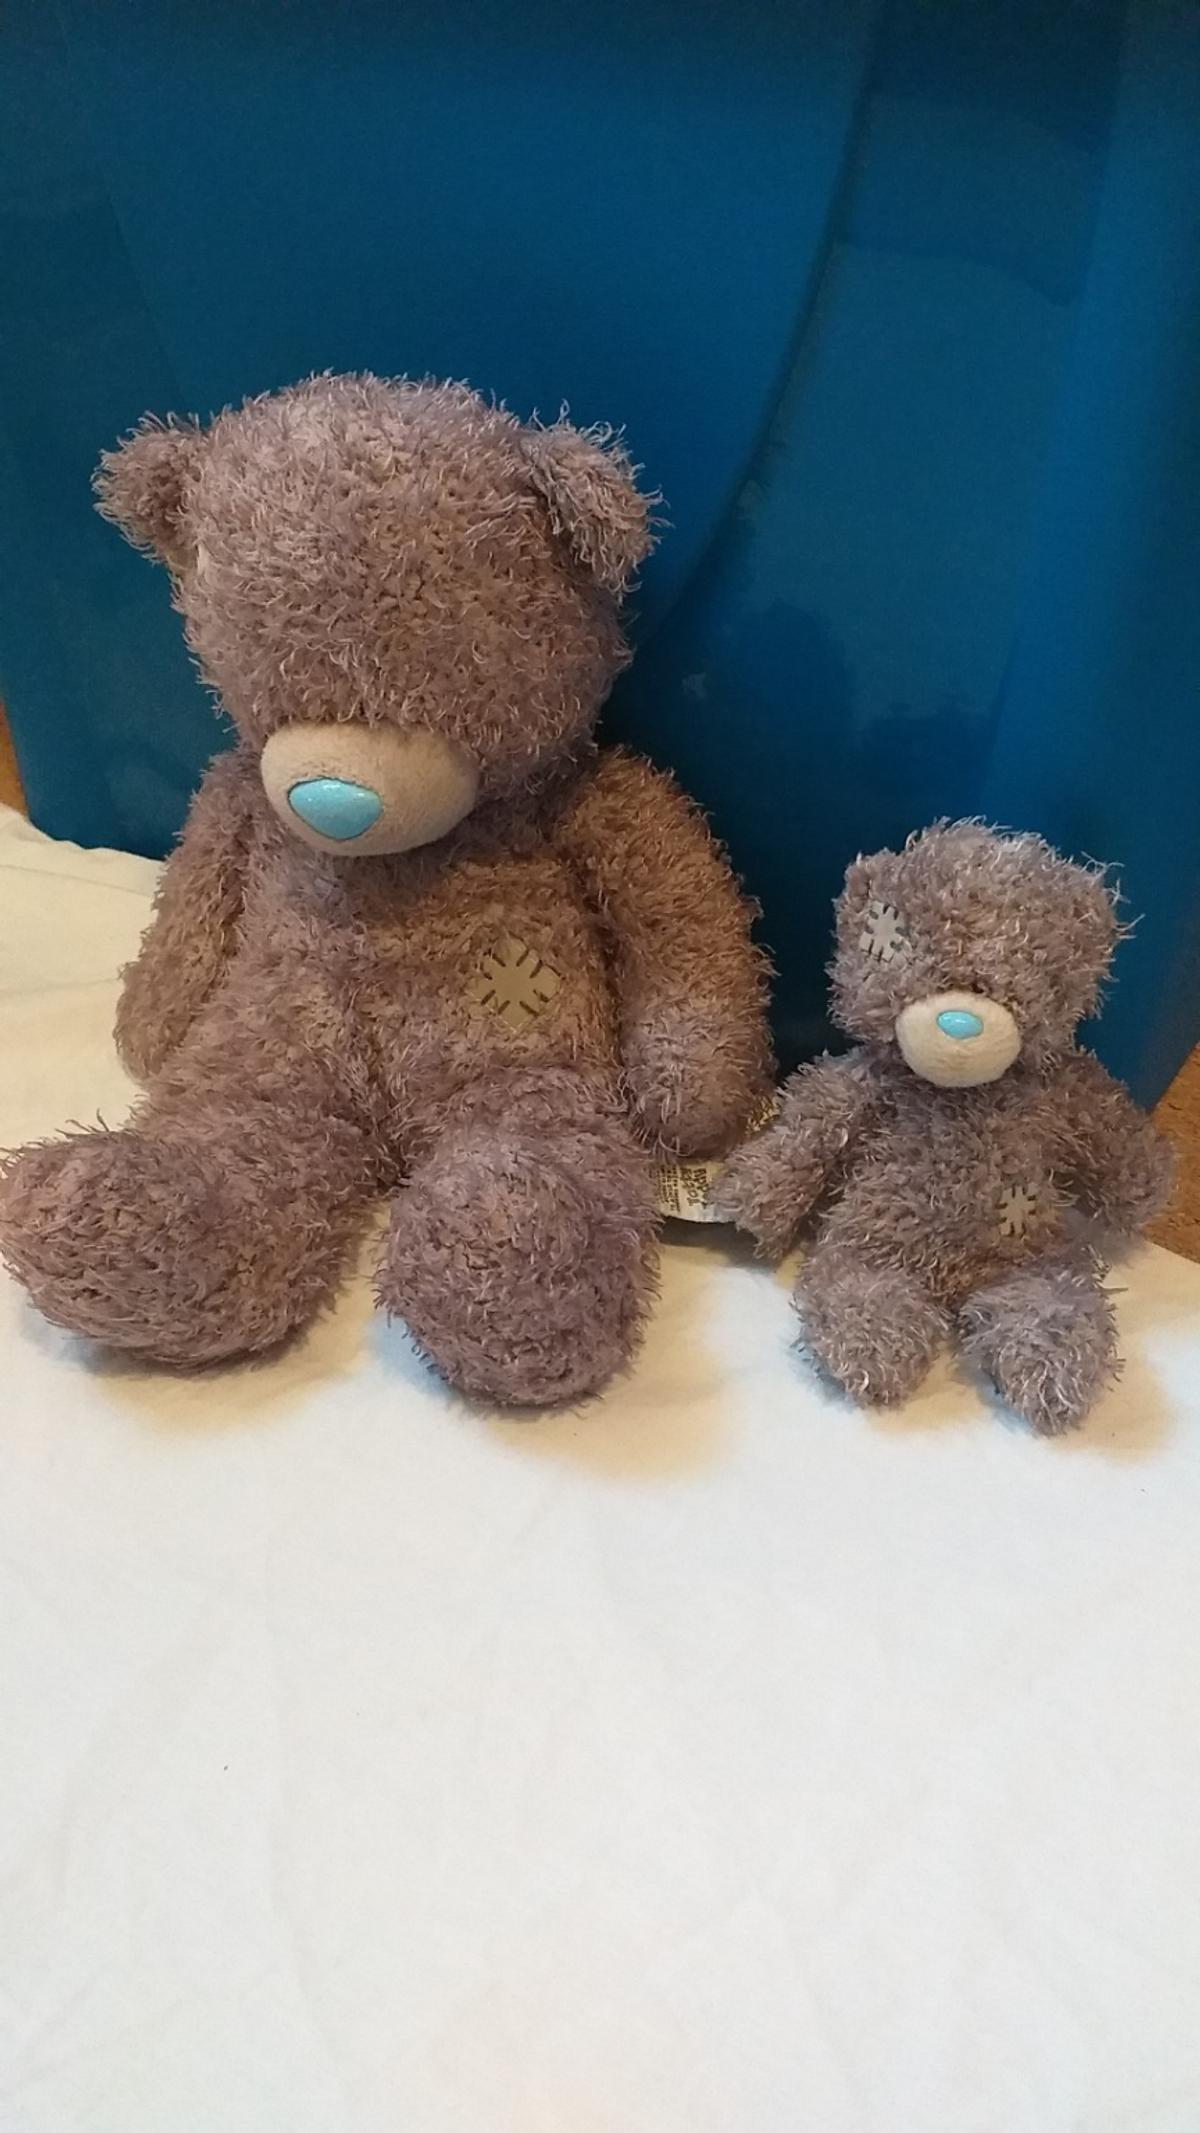 Blue nose teddy bear pictures